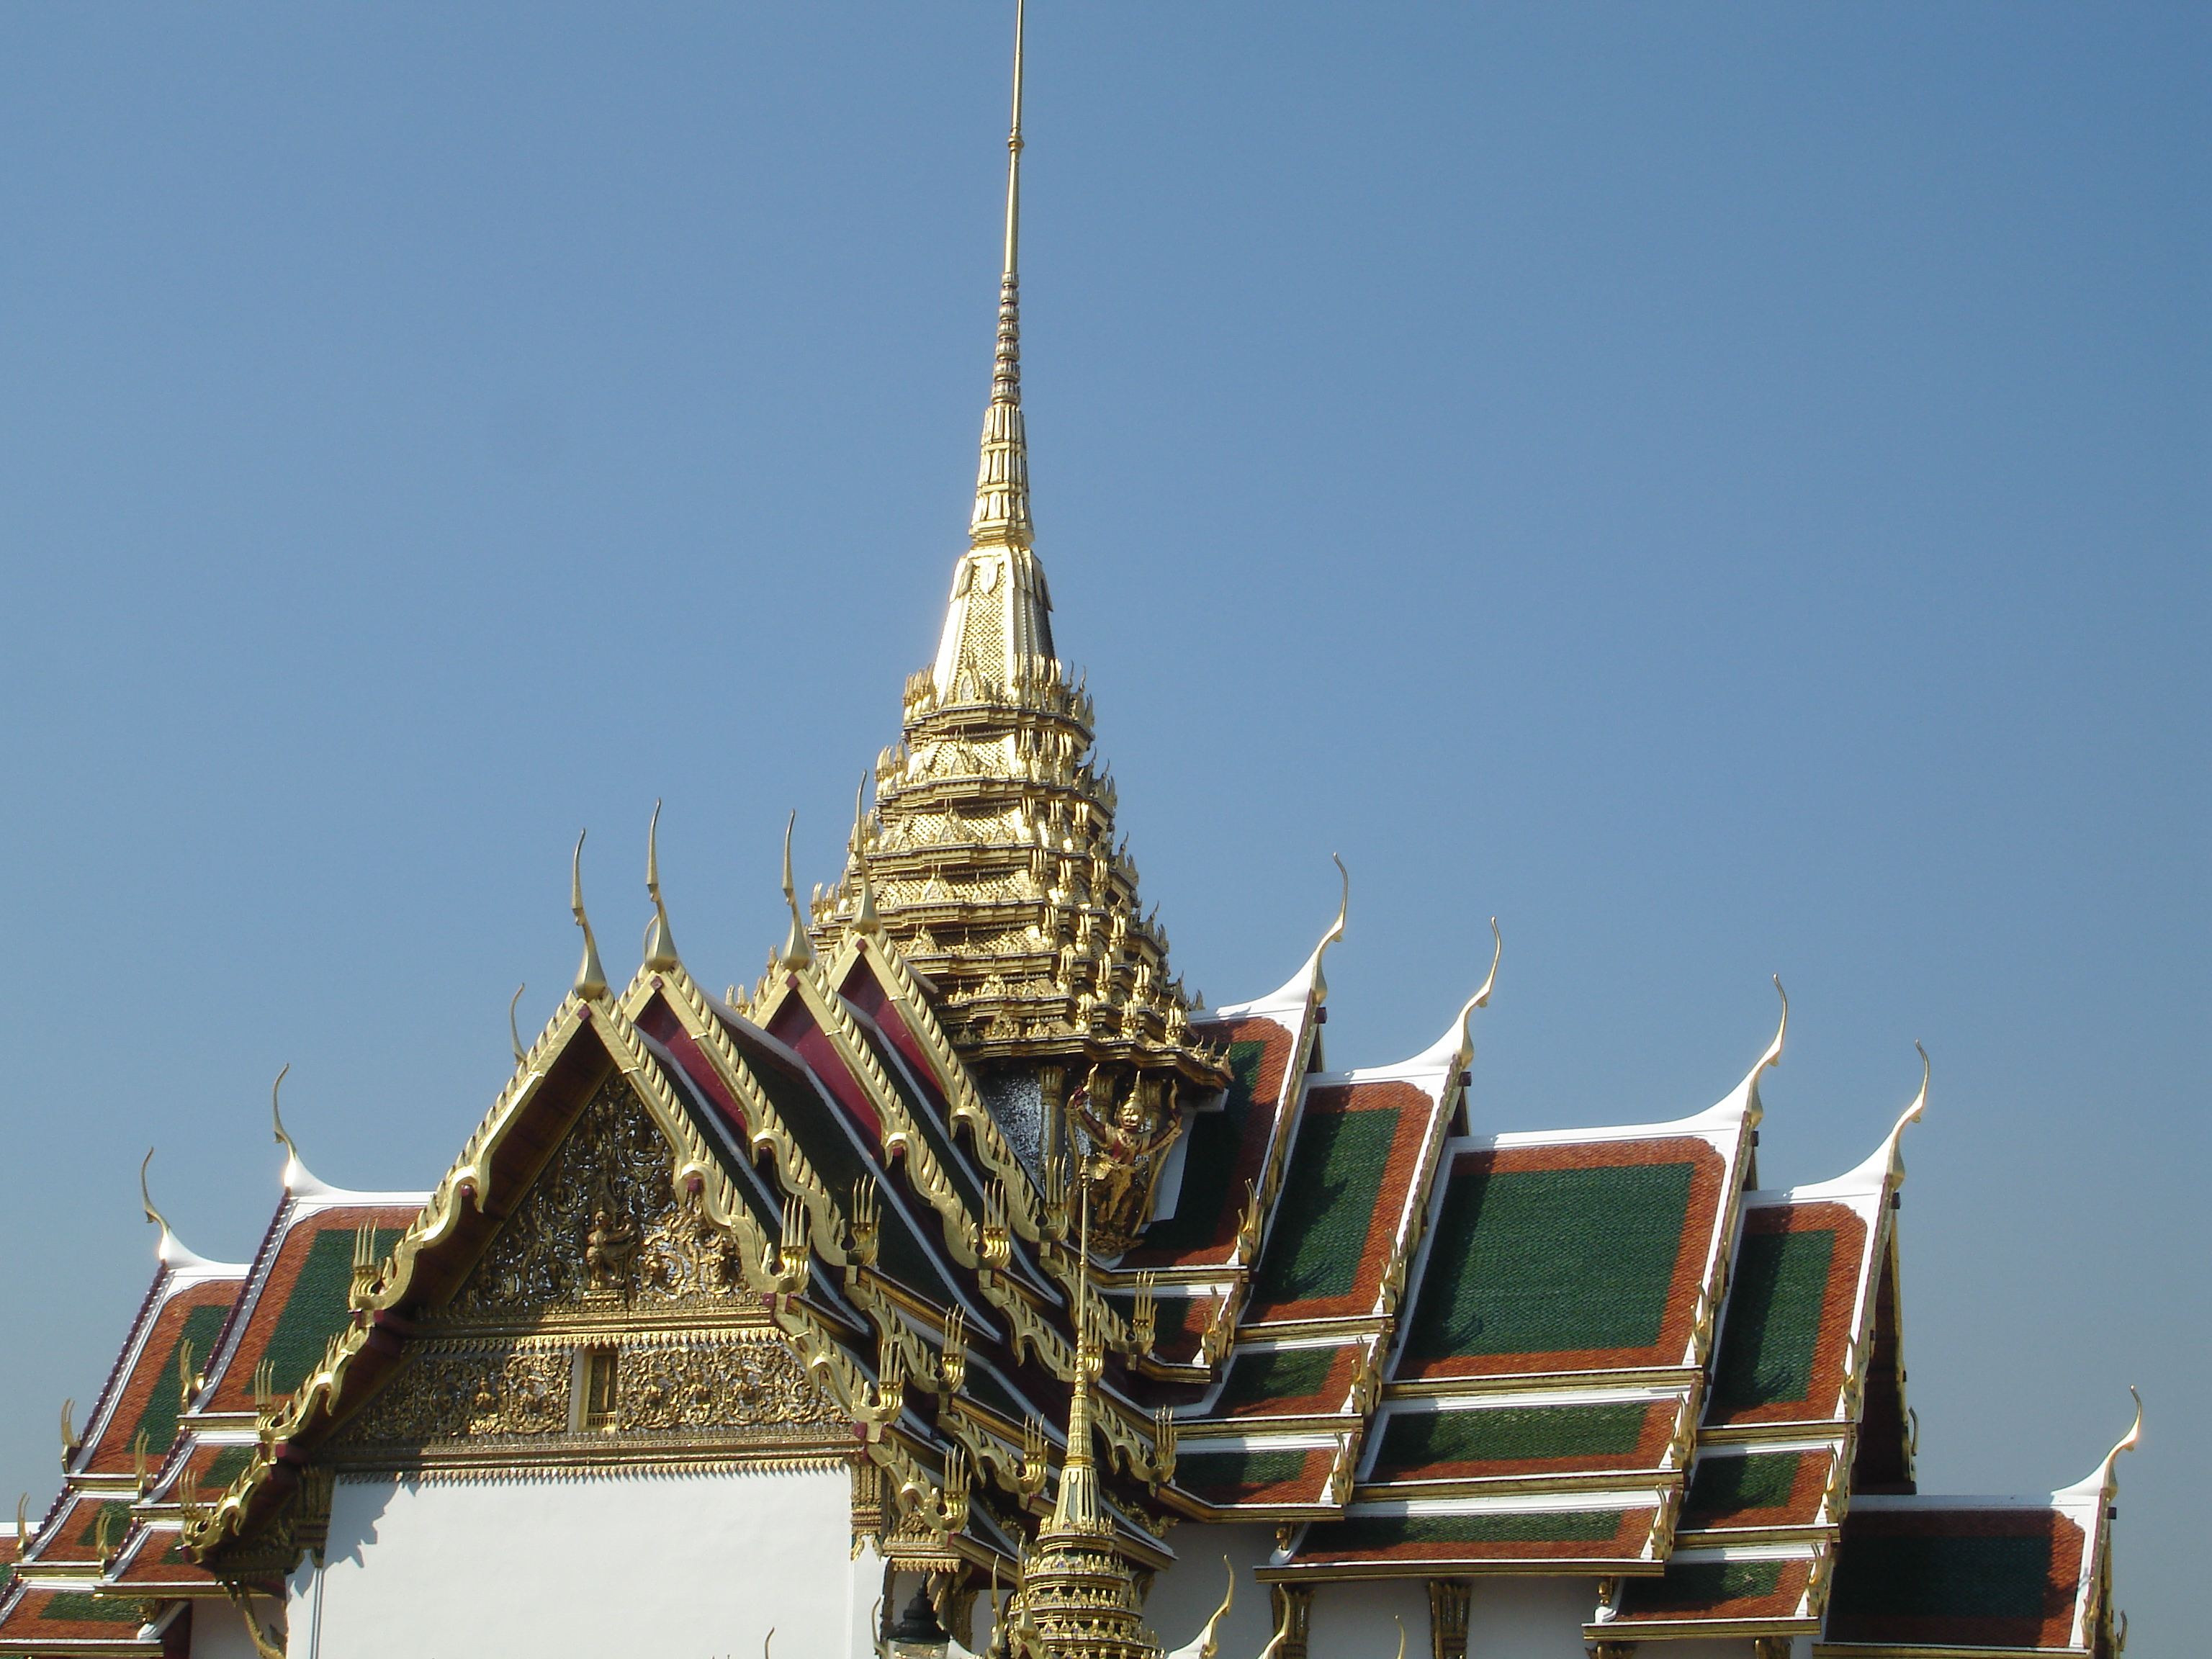 Roof of Phra Thinang Dusit Maha Prasat, location of the body of His Majesty the late King Bhumibol Adulyadej from October 14, 2016, until October 26, 2017, at the Grand Palace in Bangkok. Photo taken by Mark Jochim on May 17, 2006.